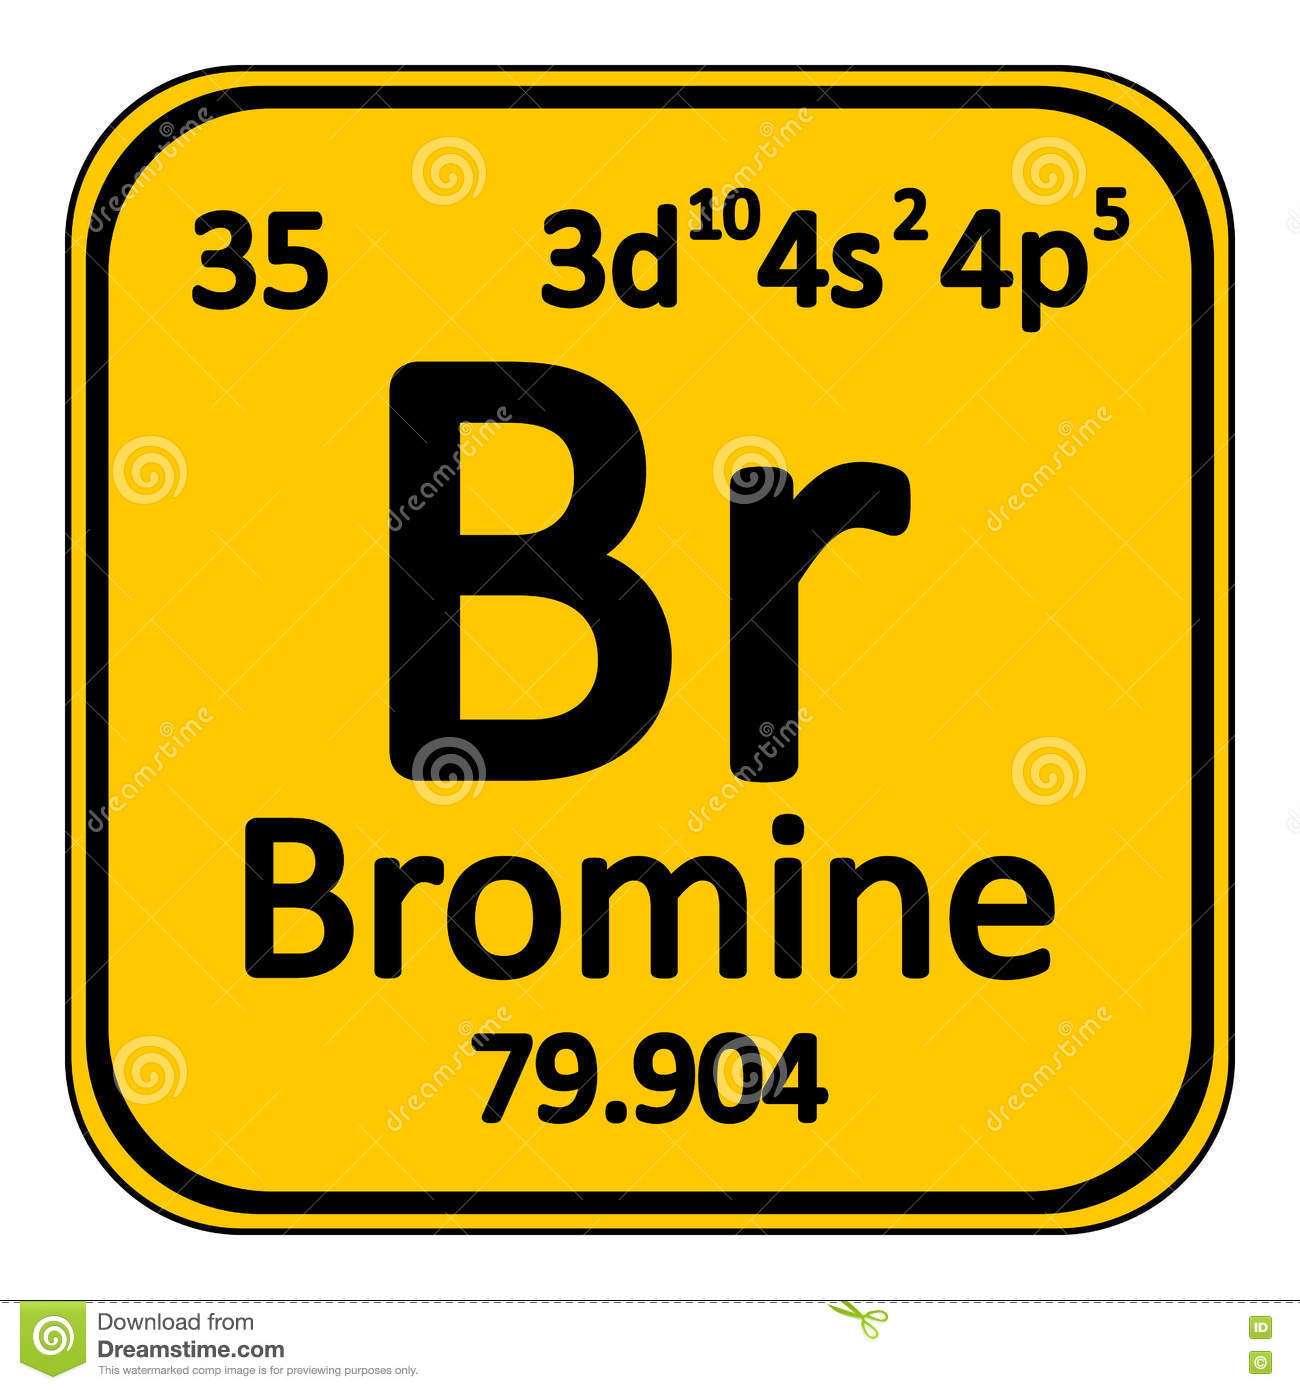 Periodic table element bromine icon stock illustration image royalty free illustration download periodic table element bromine gamestrikefo Choice Image